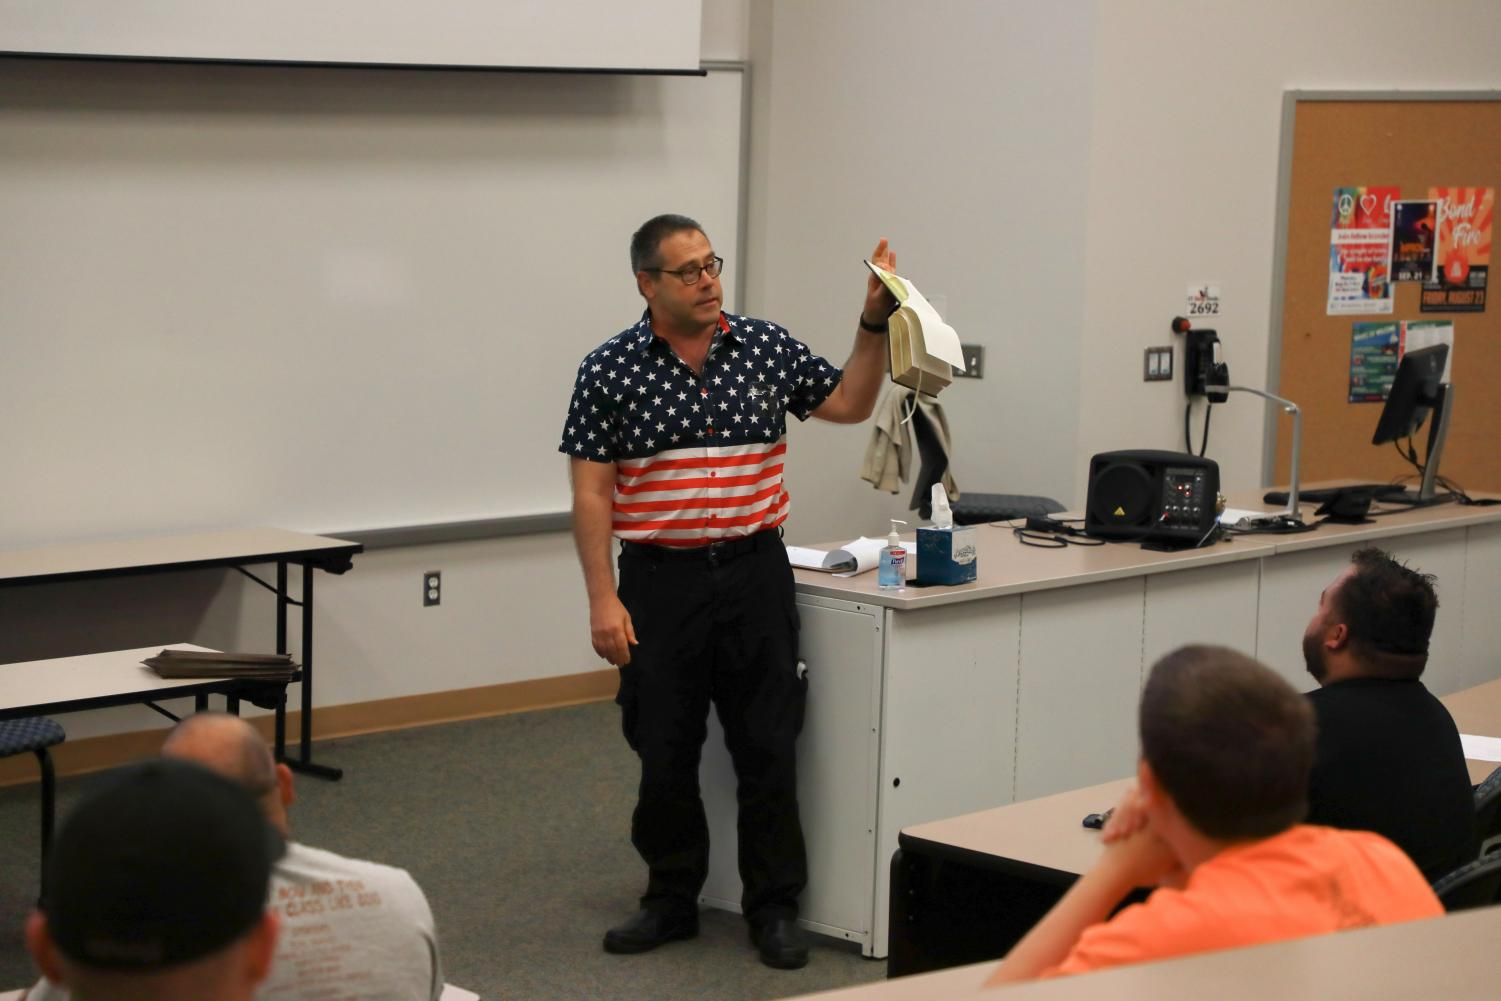 Photos courtesy of Miguel Gutierrez/ISLAND WAVES -Professor Eric Moore demonstrates how short the U.S. Constitution is.